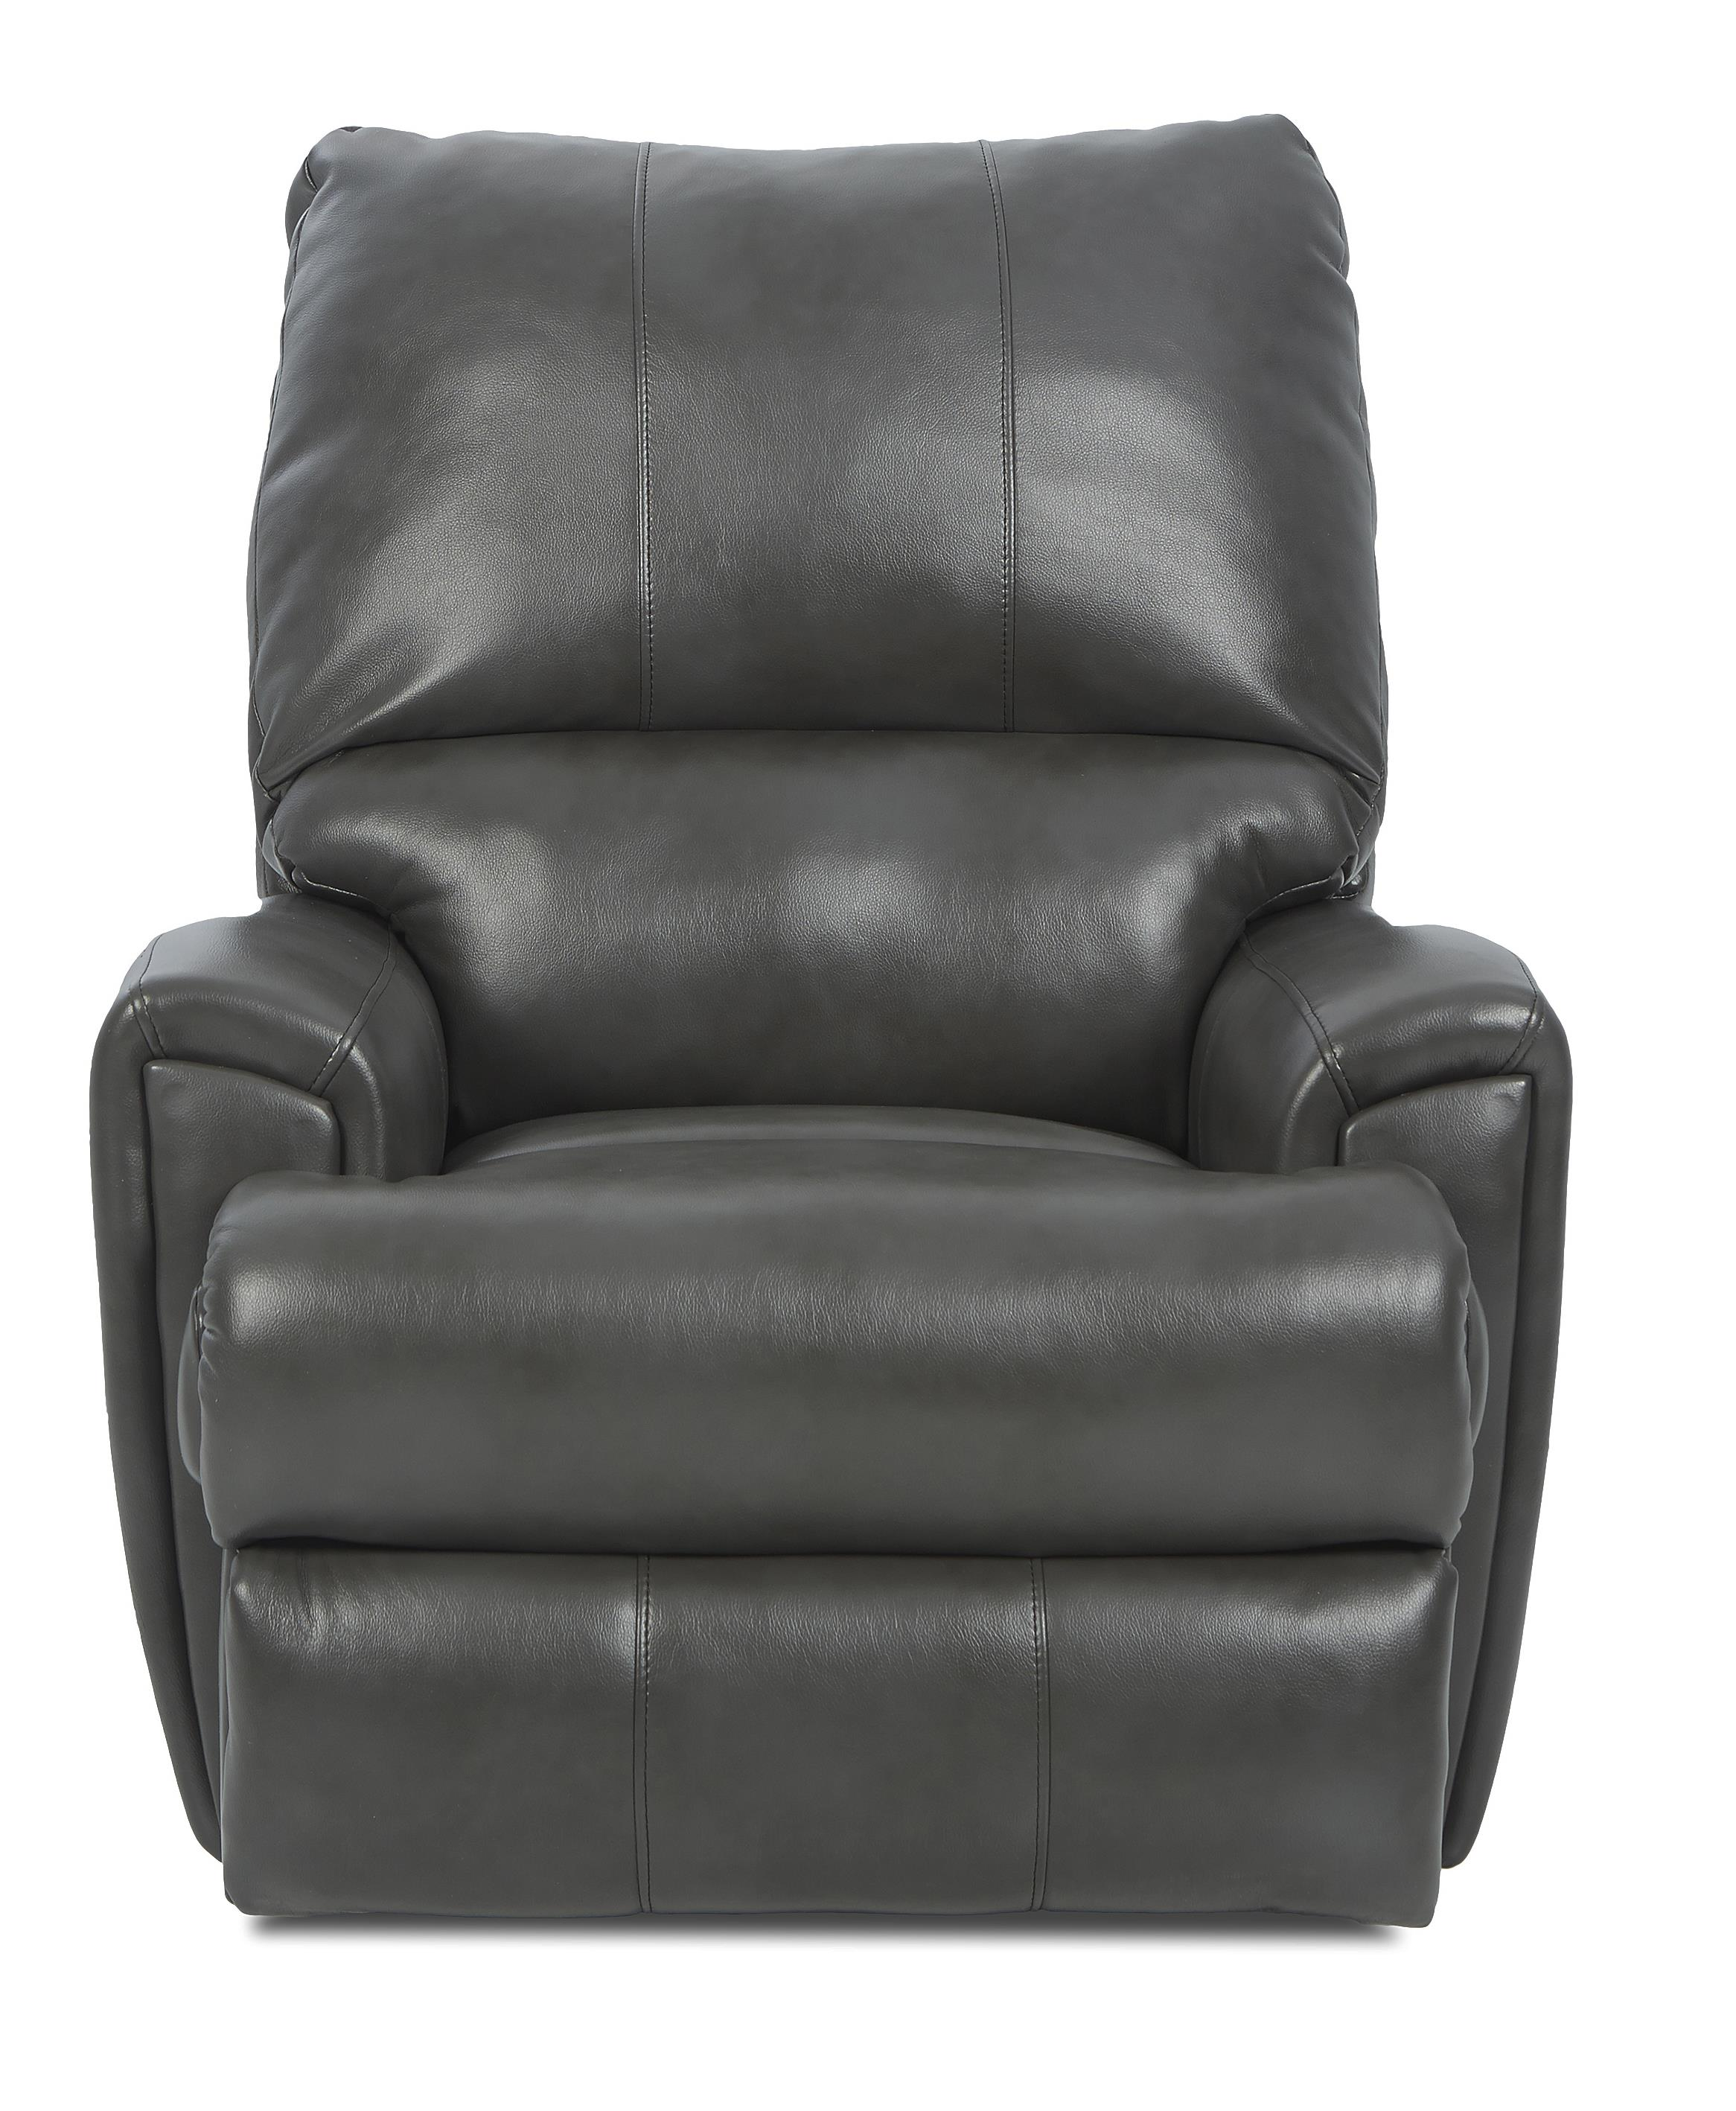 Klaussner Julio Transitional Reclining Chair - Item Number: 83143H RC-JupiterSteel